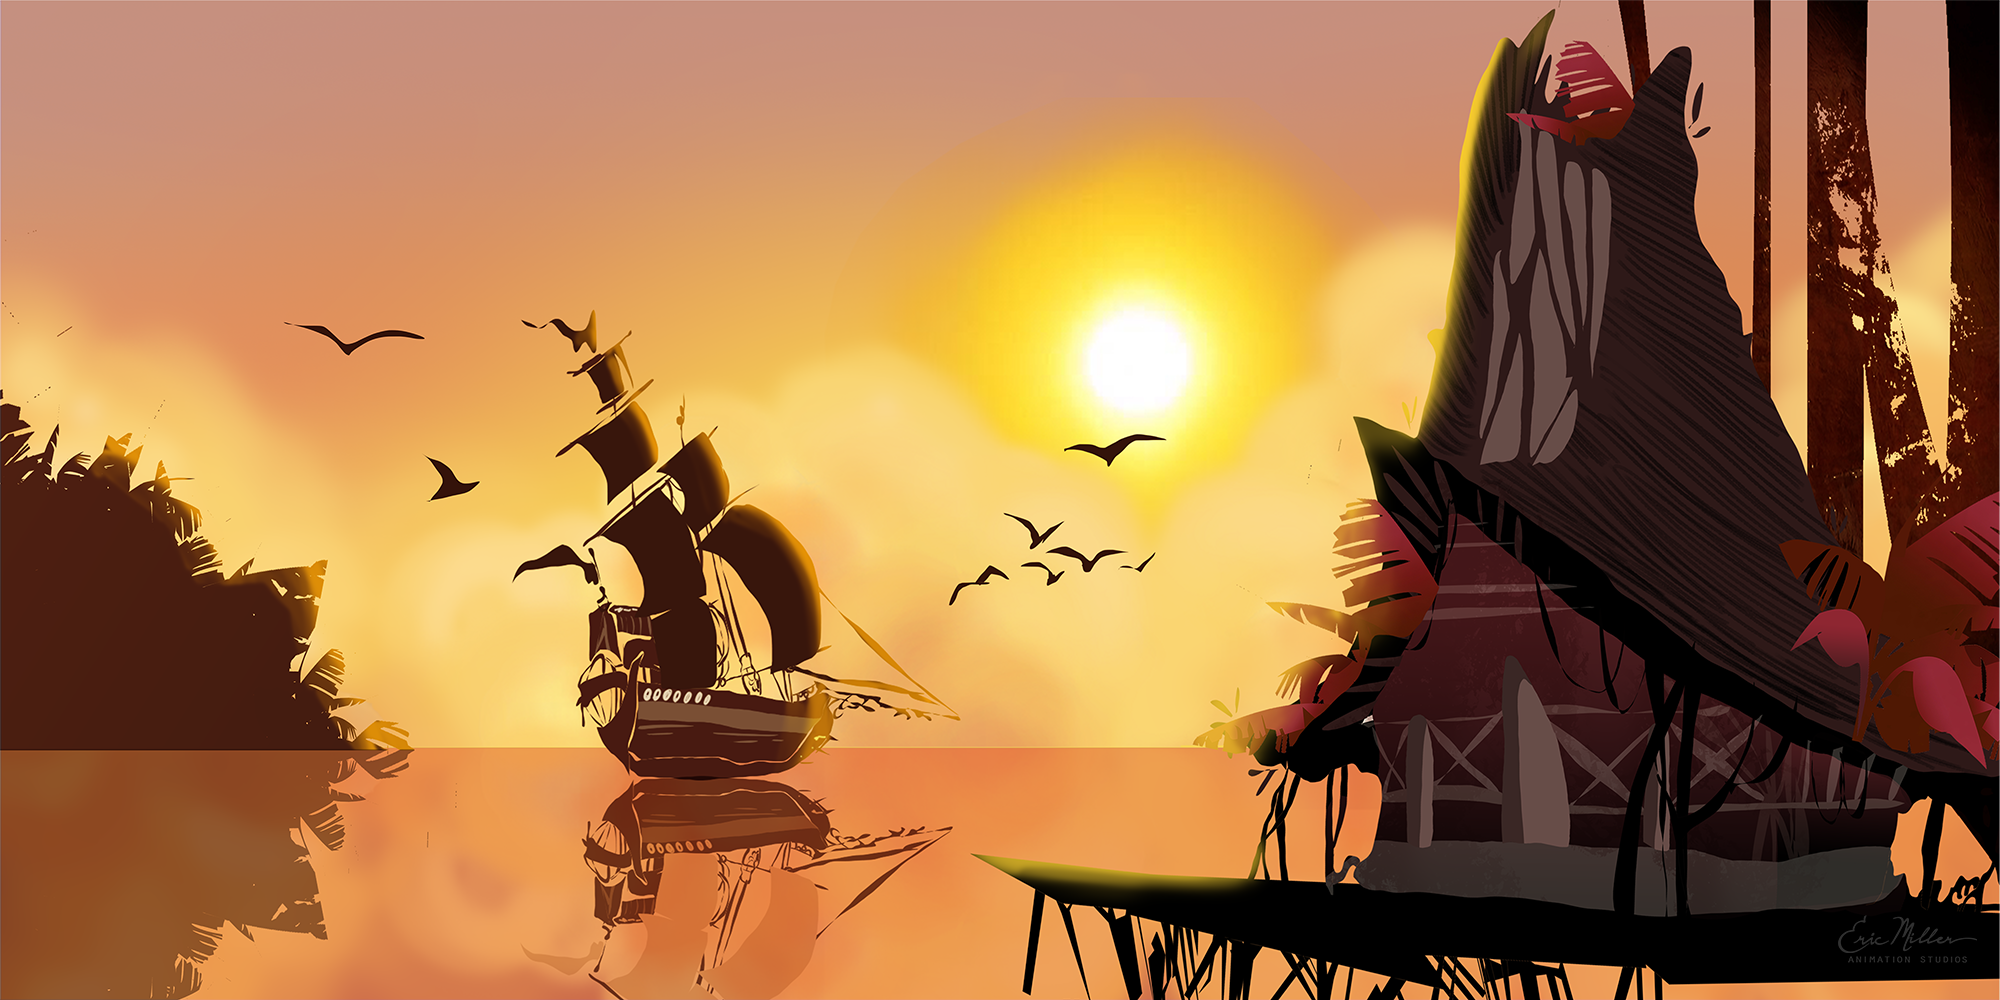 Concept art Martina did for Eric Miller Animation